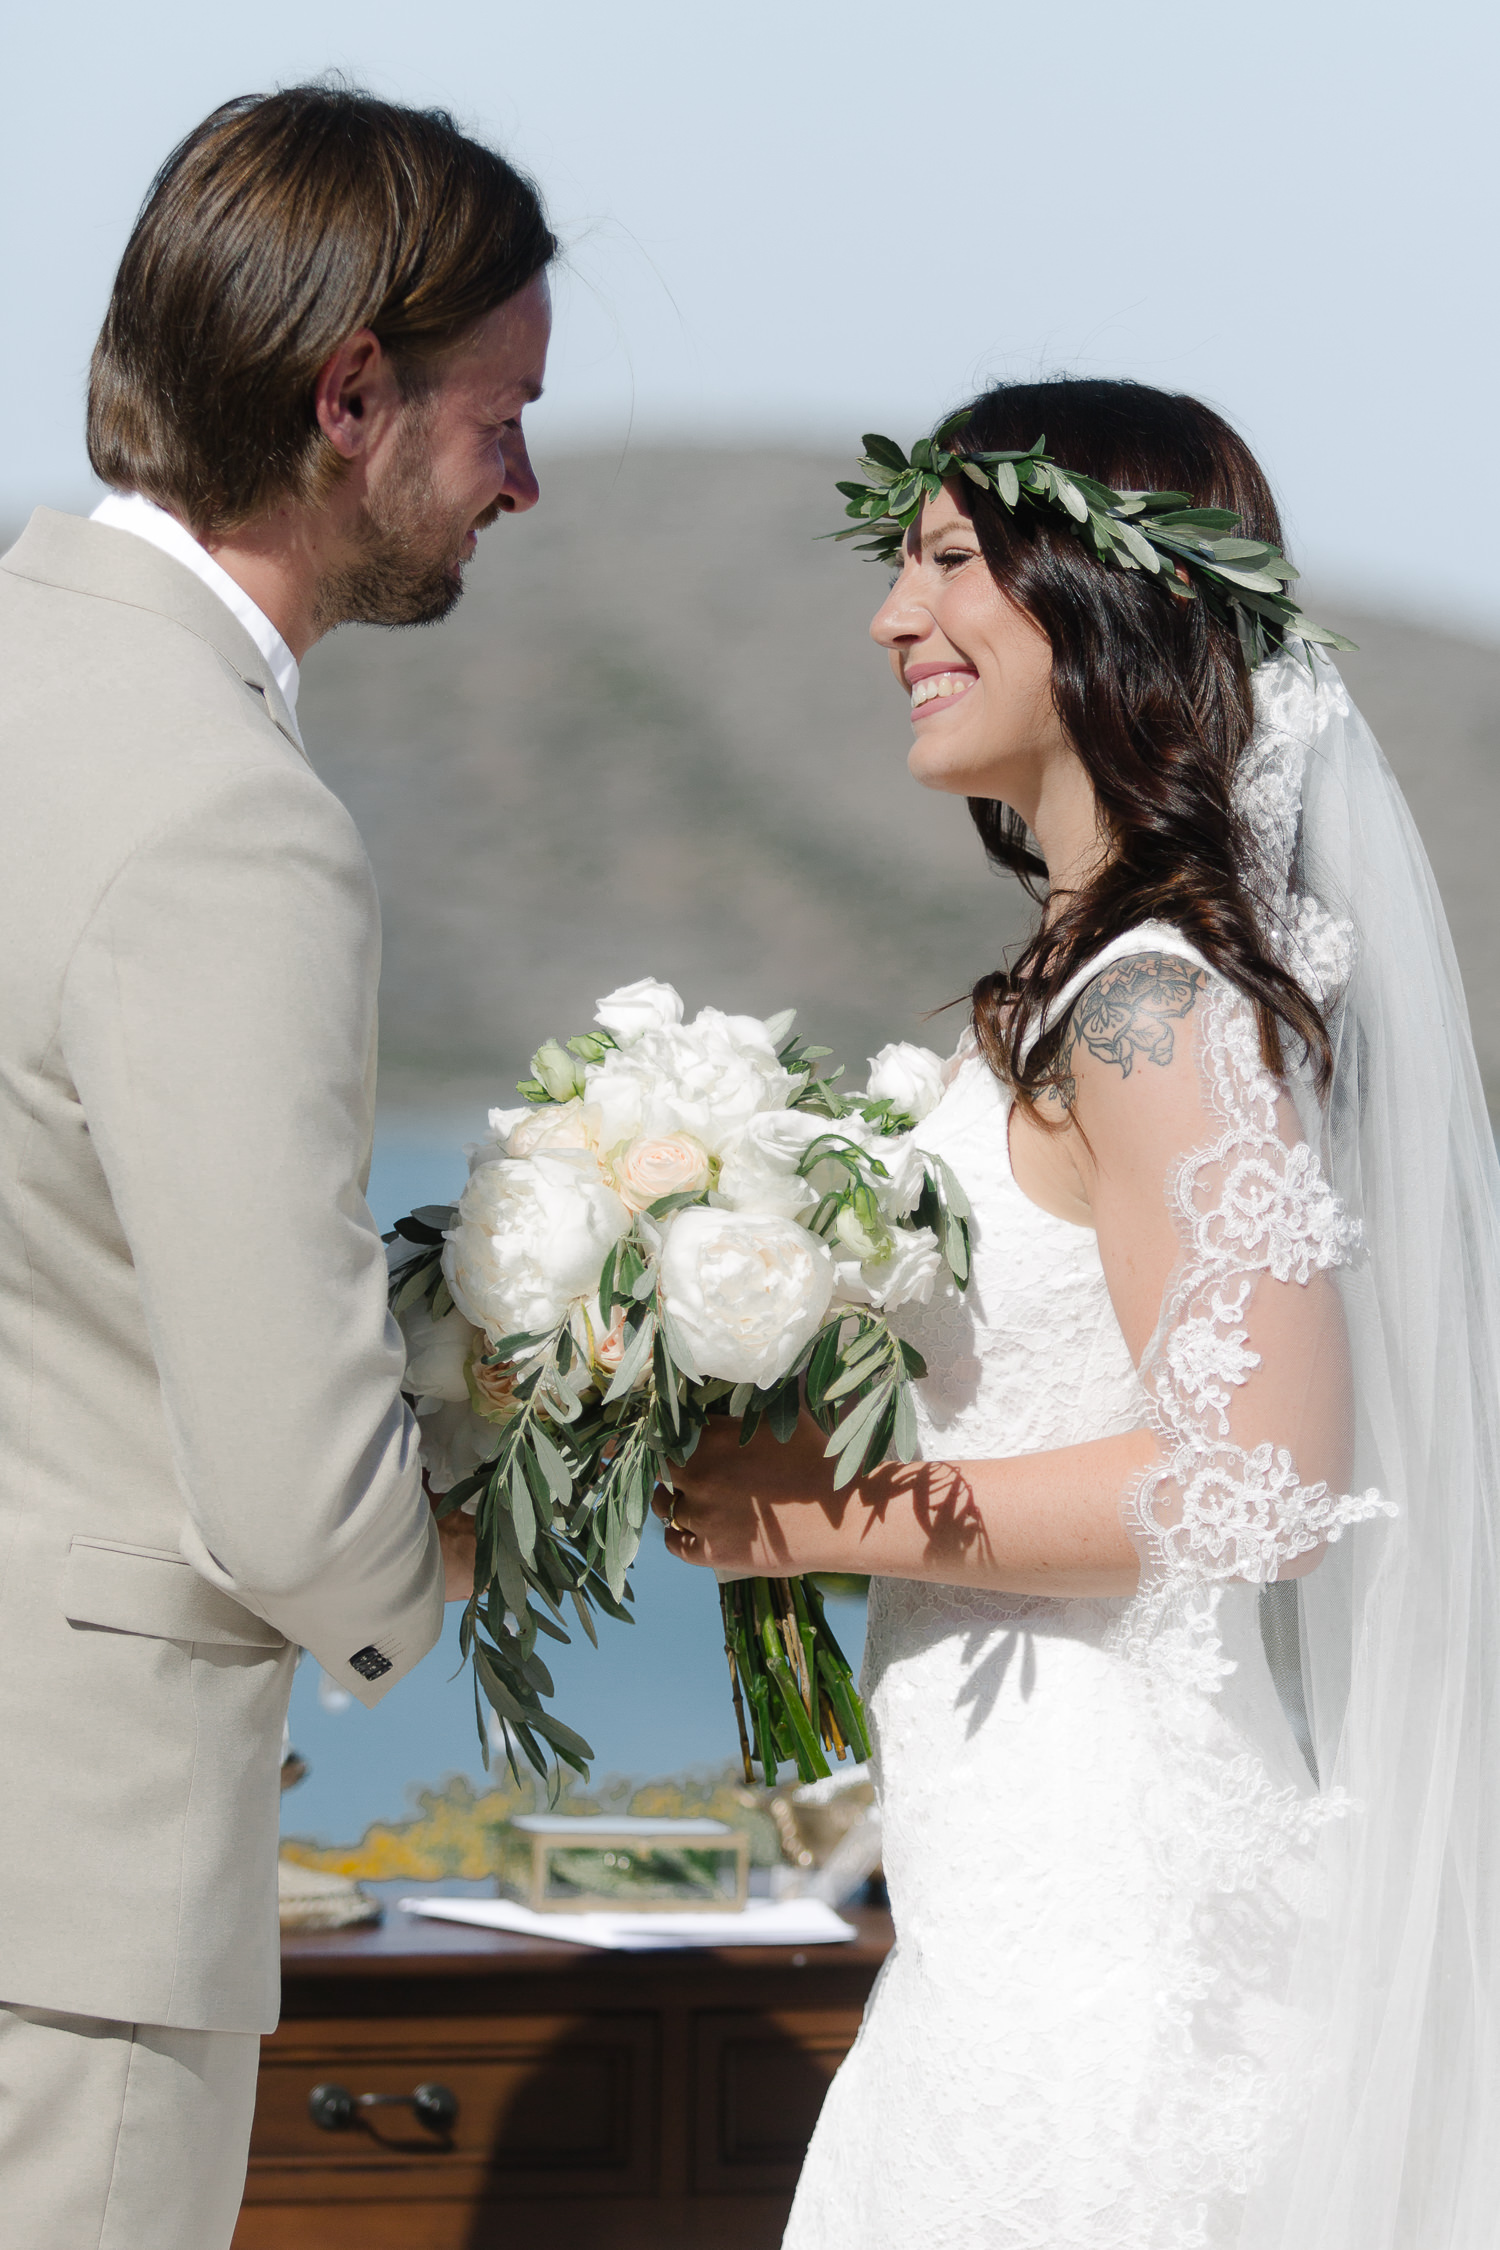 Fotomagoria - Elounda - Crete - Greece Wedding 130.jpg